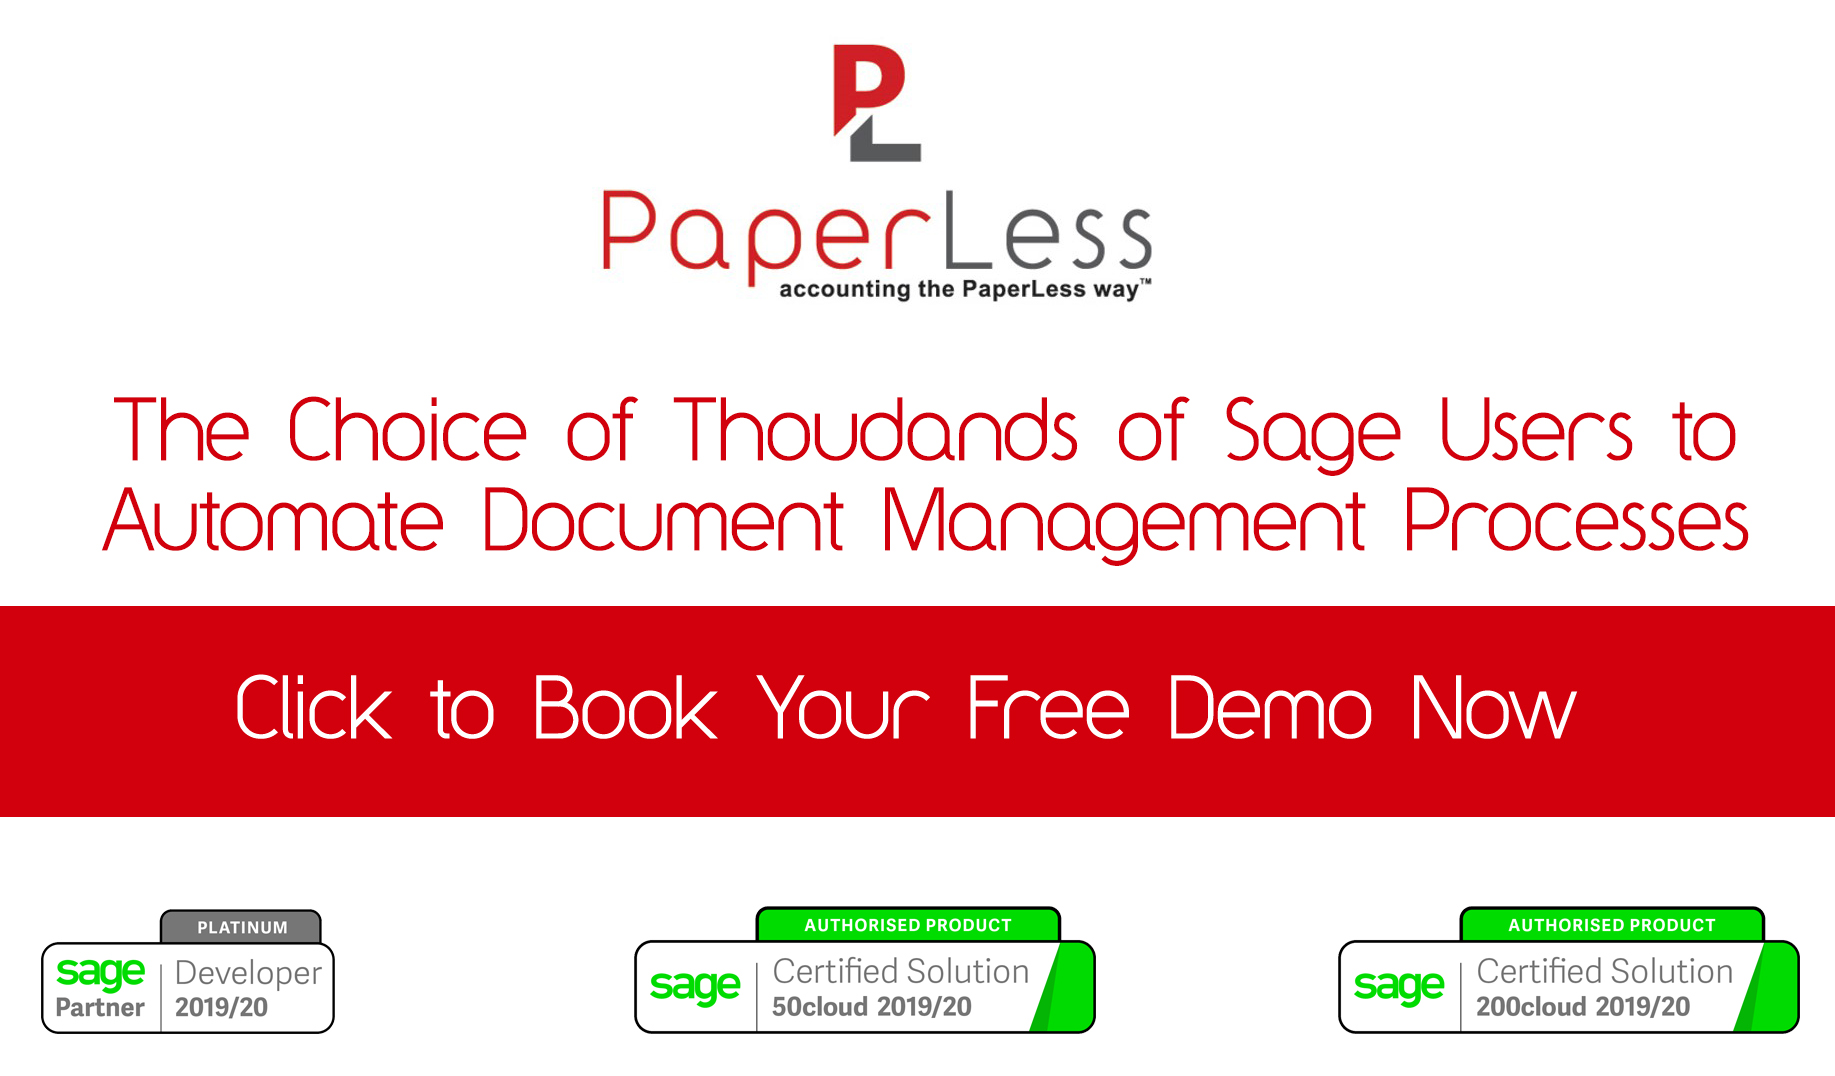 Click here to Book Your Free Demo of PaperLess OCR for Sage